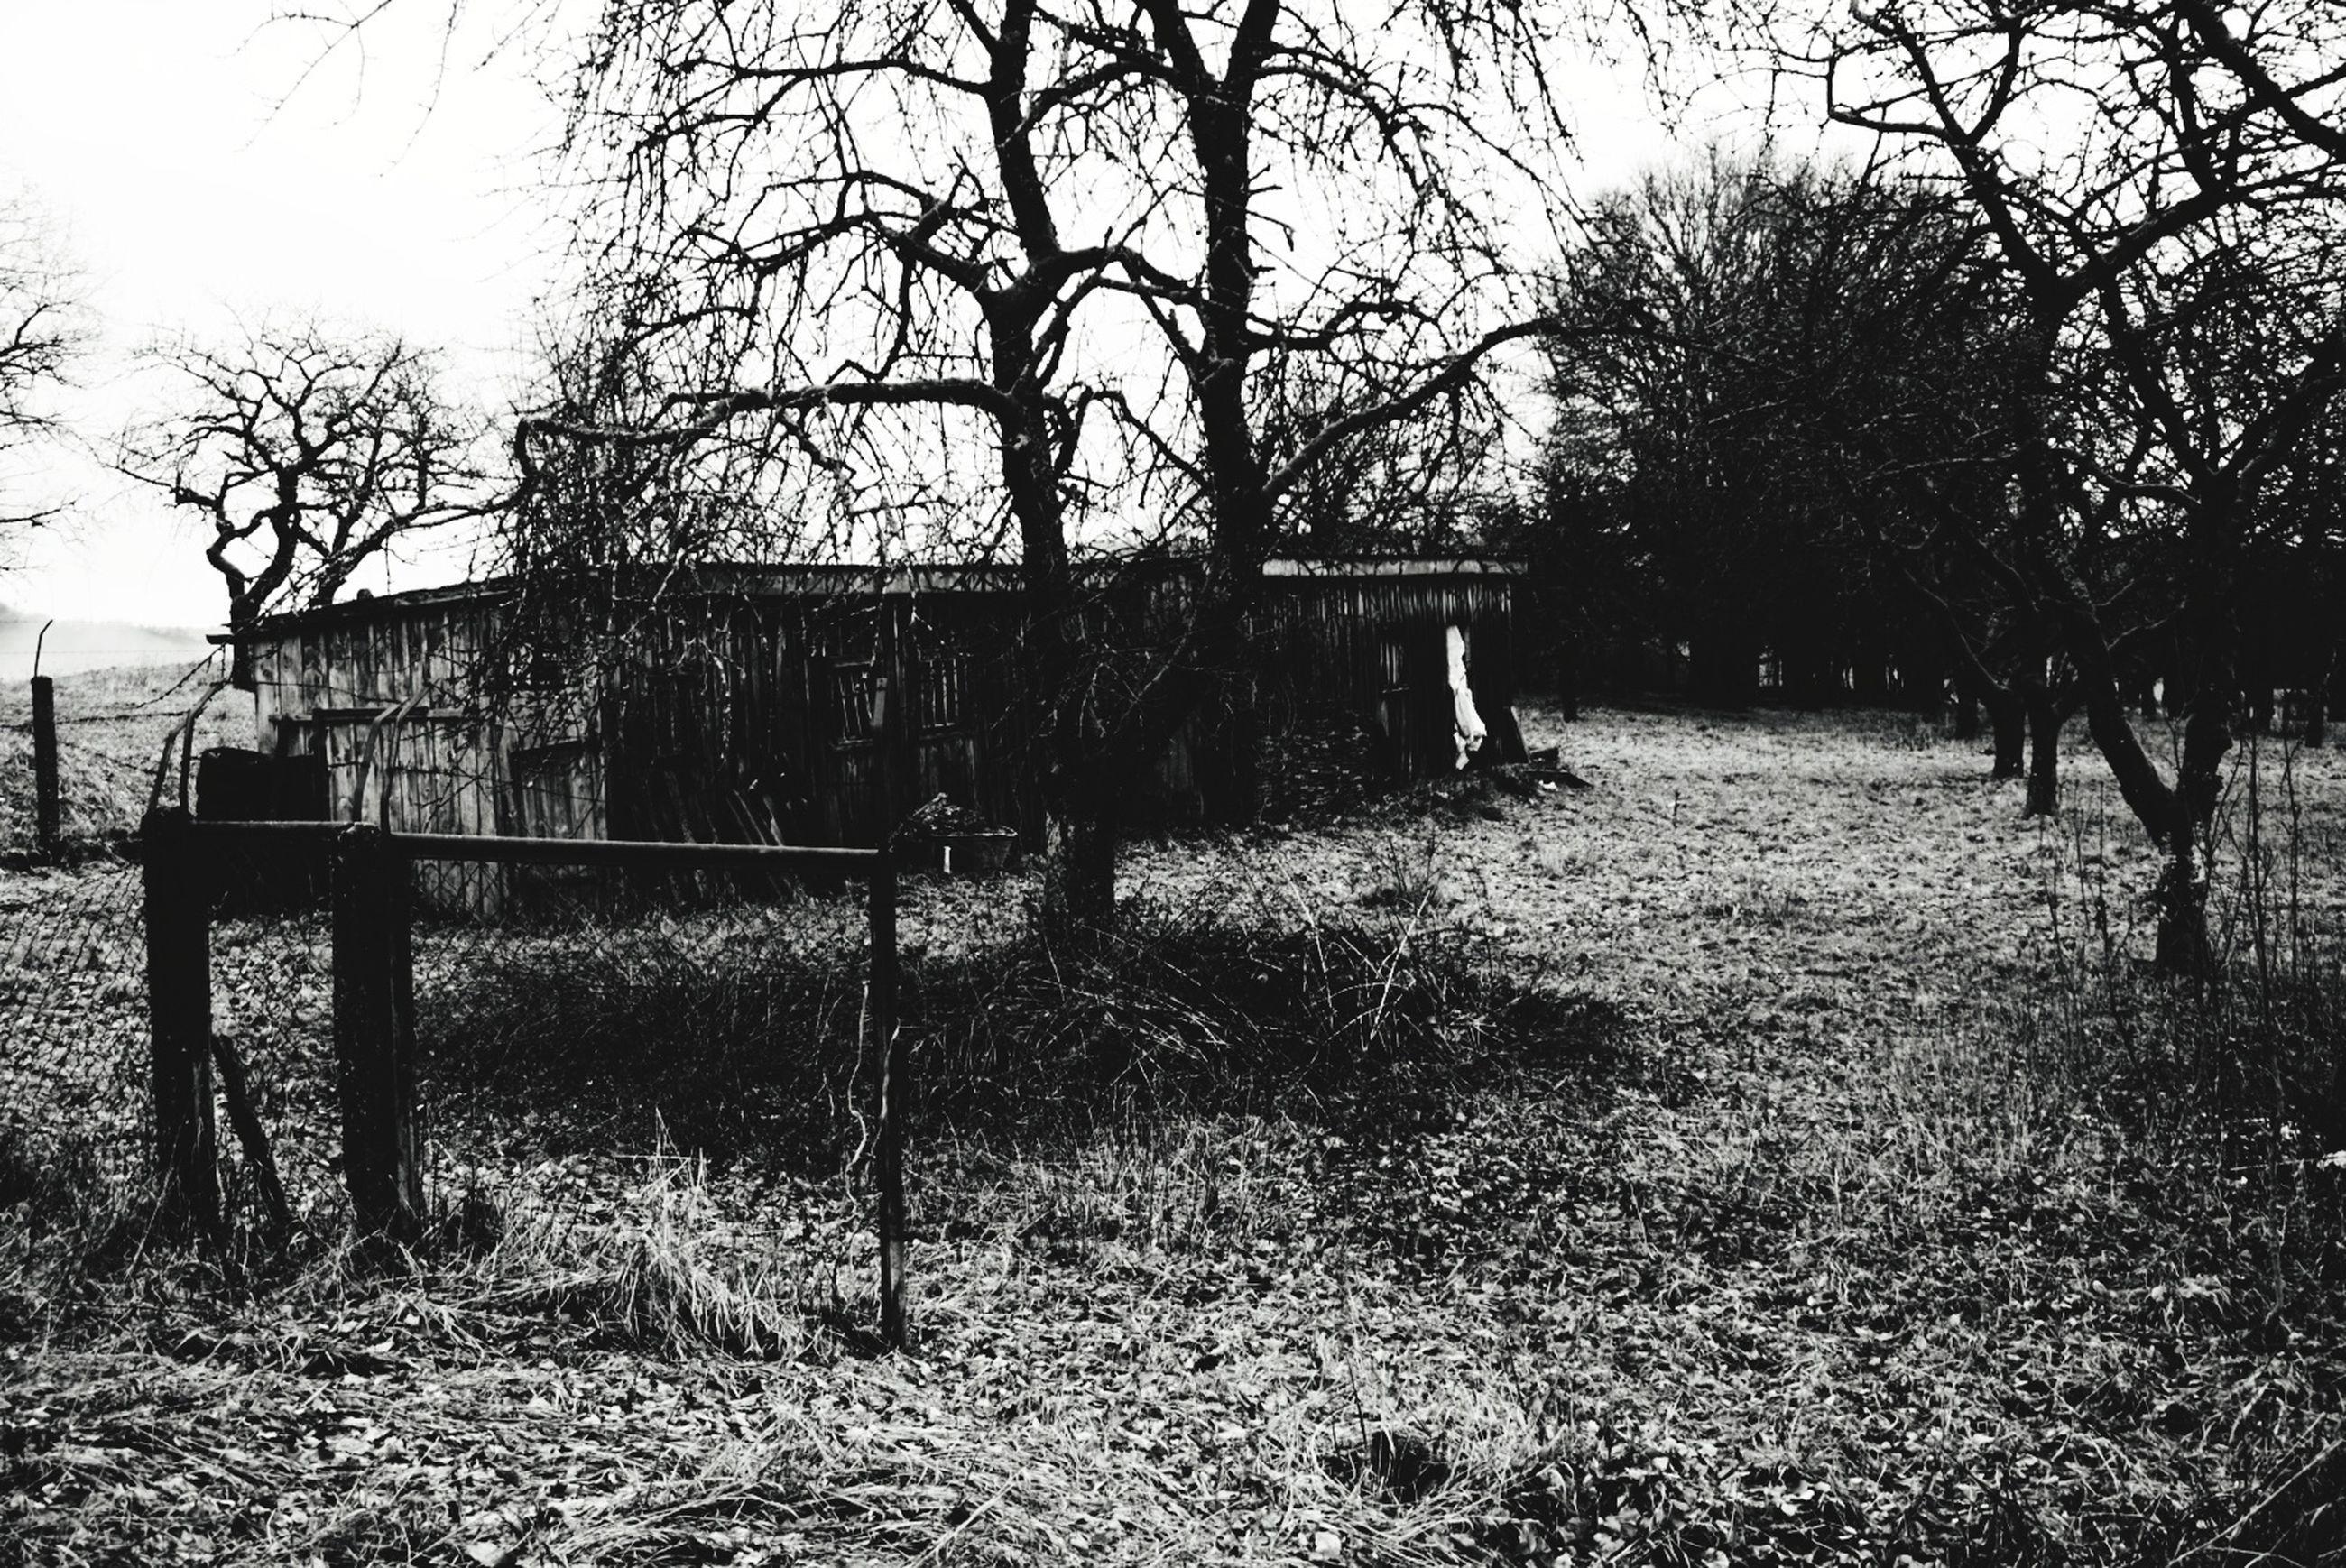 tree, plant, architecture, built structure, nature, no people, land, building exterior, day, sky, bare tree, field, building, abandoned, growth, outdoors, history, grass, old, branch, ruined